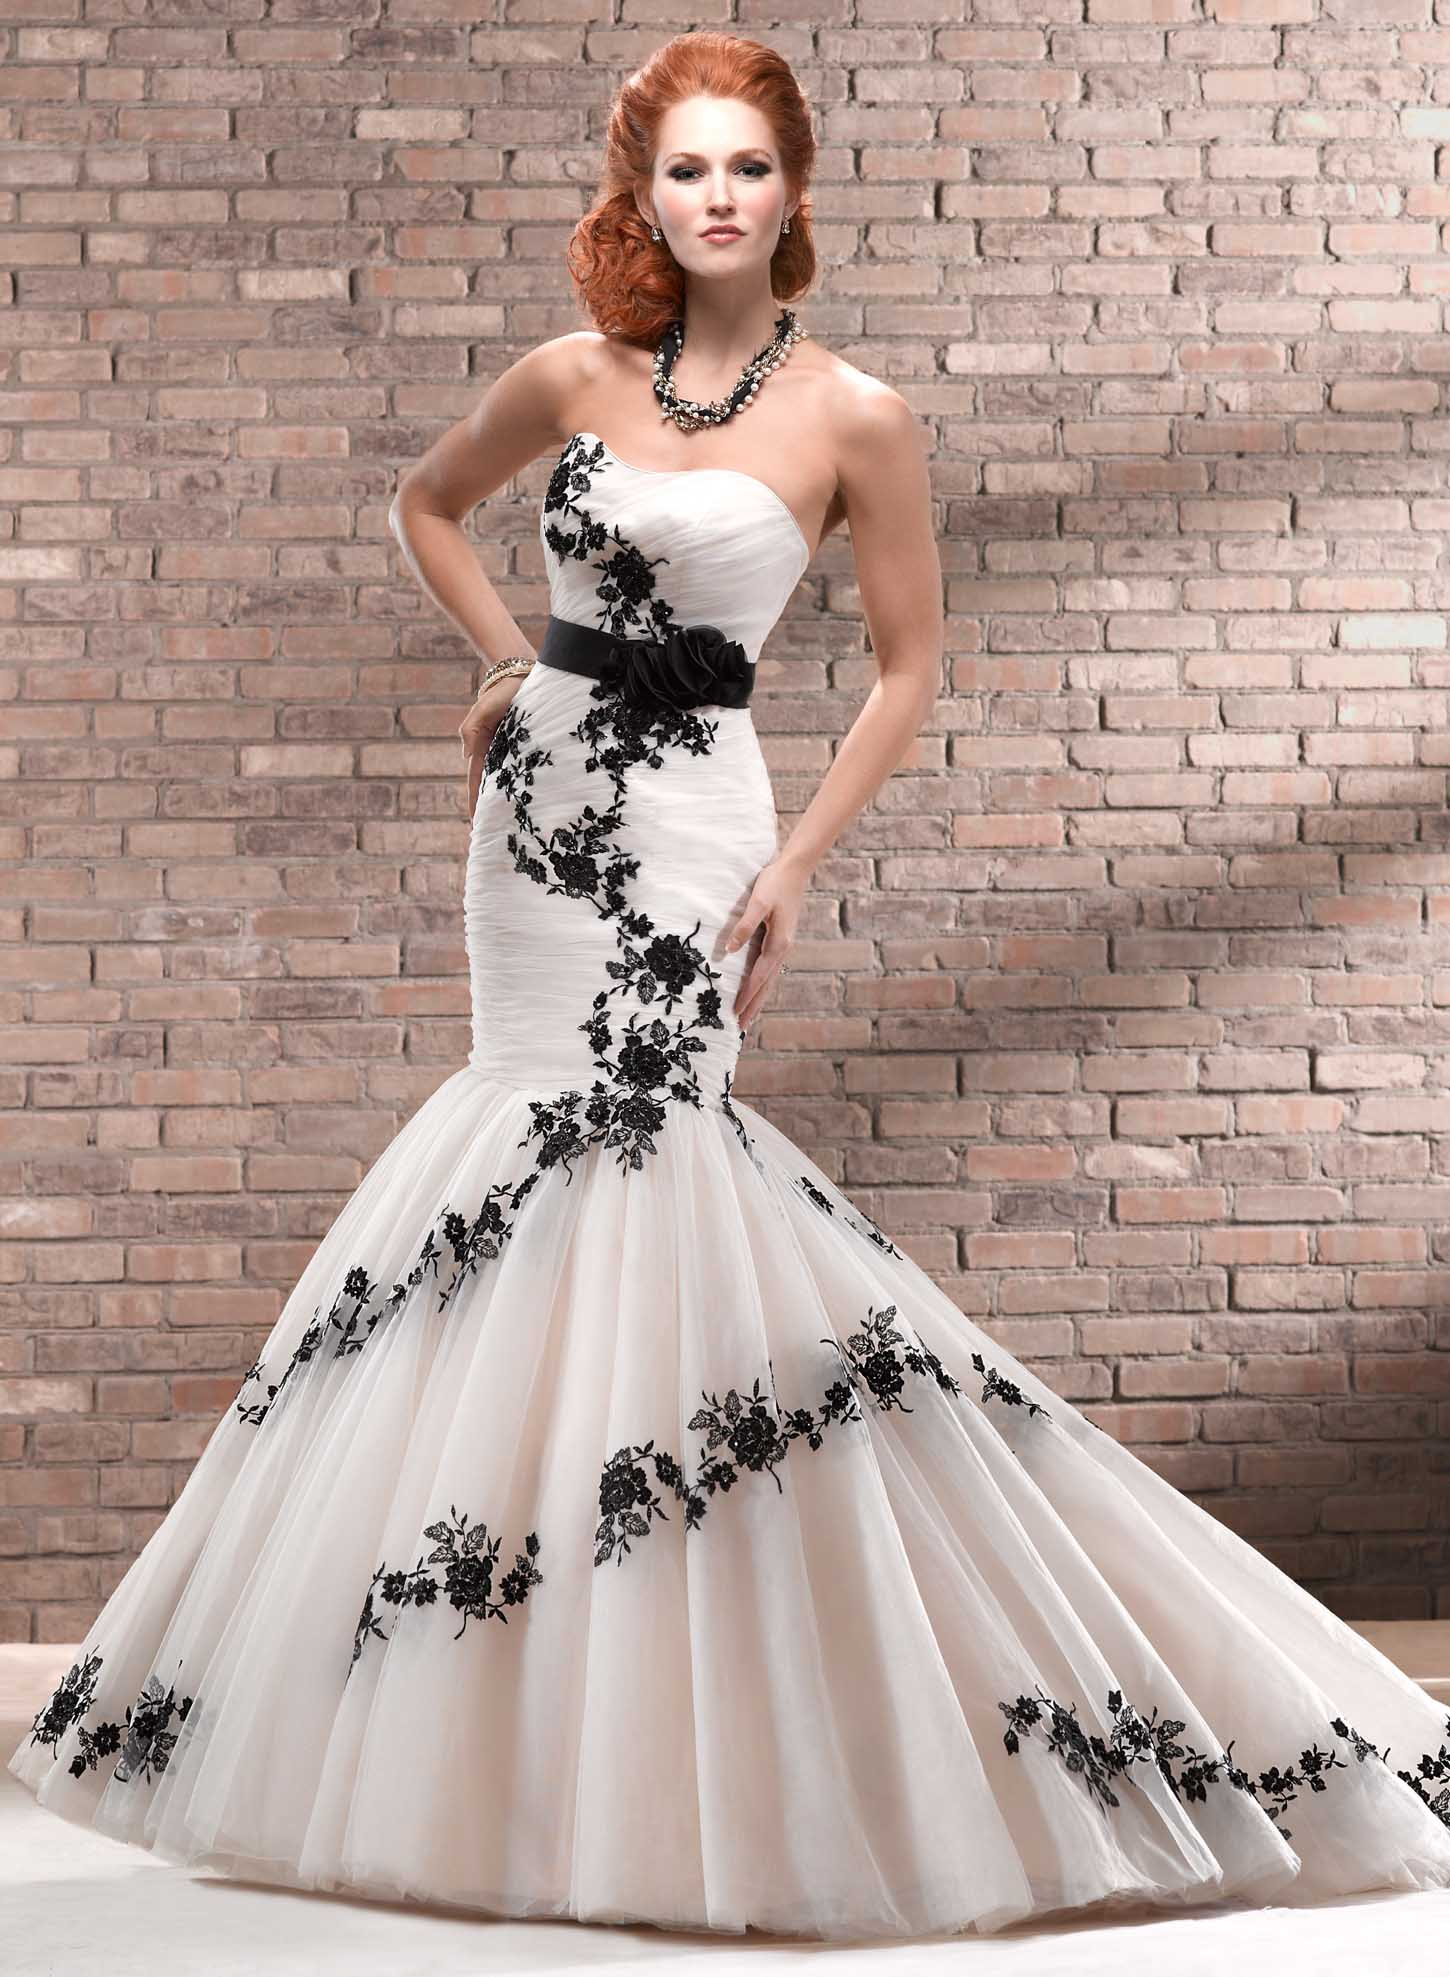 Black wedding dresses dressed up girl for Unique black and white wedding dresses